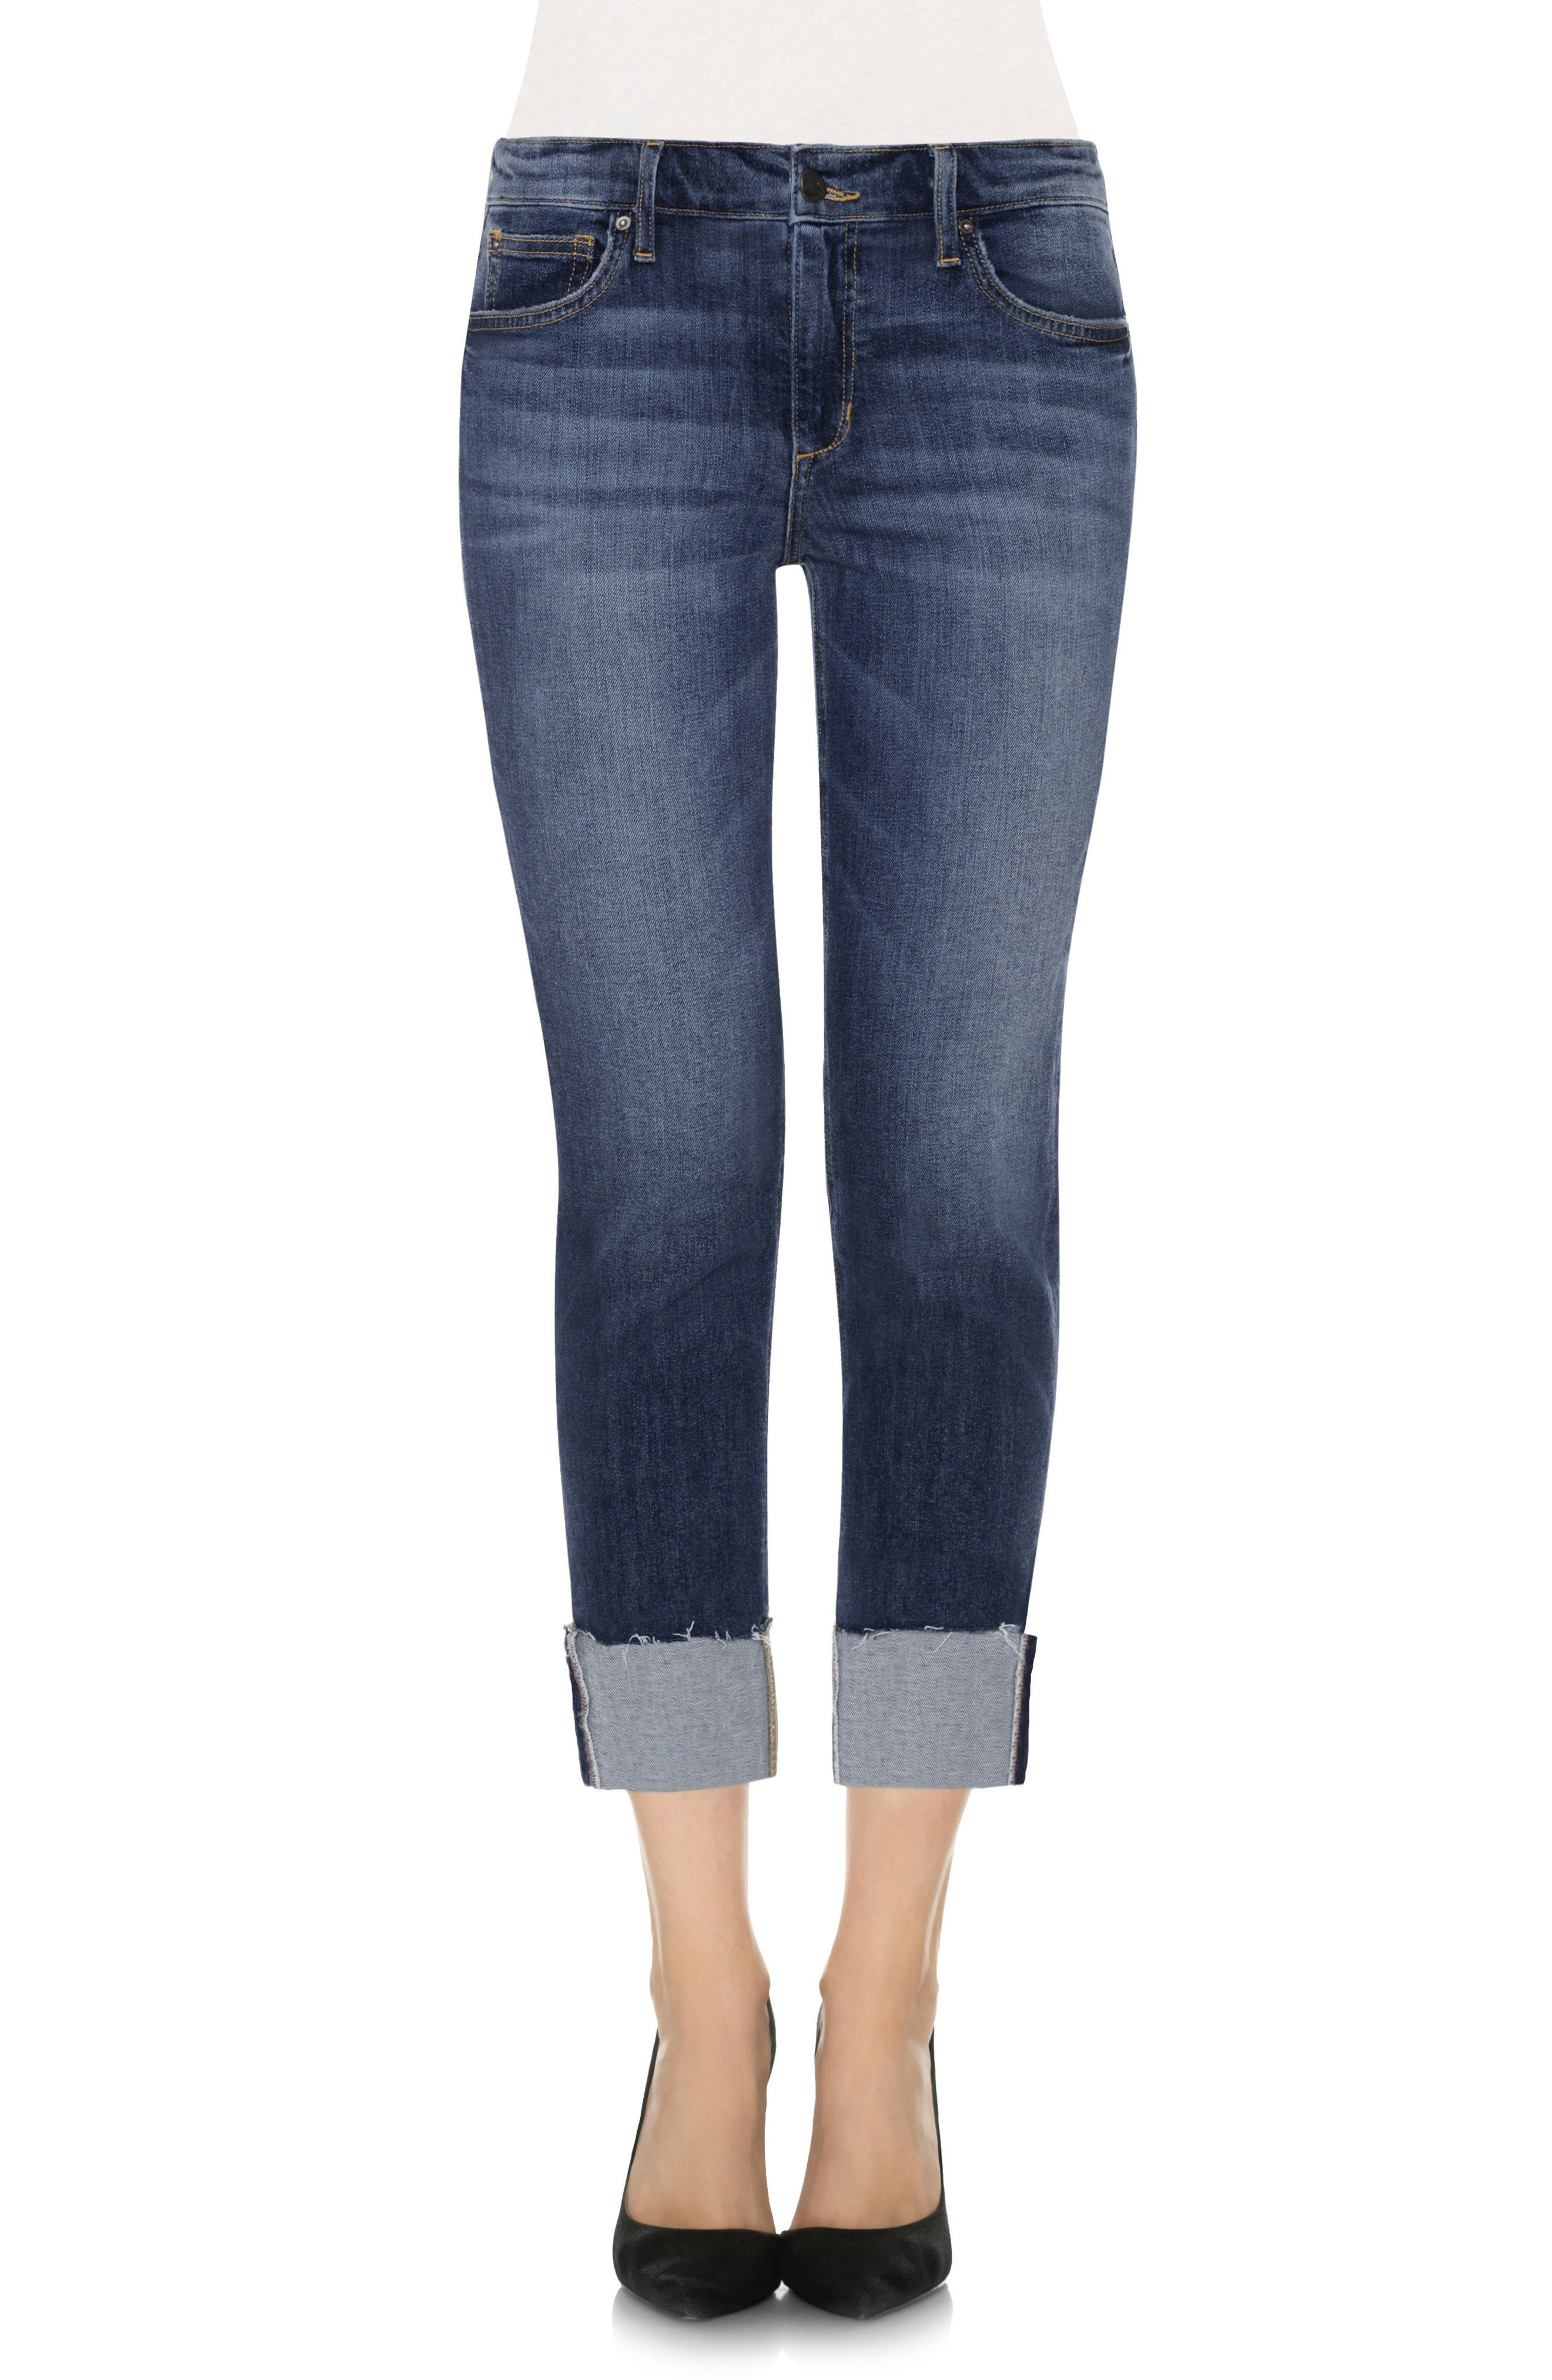 Alternate Image 1 Selected - Joes Collectors Edition - Smith Distressed Crop Boyfriend Jeans (Dionne)